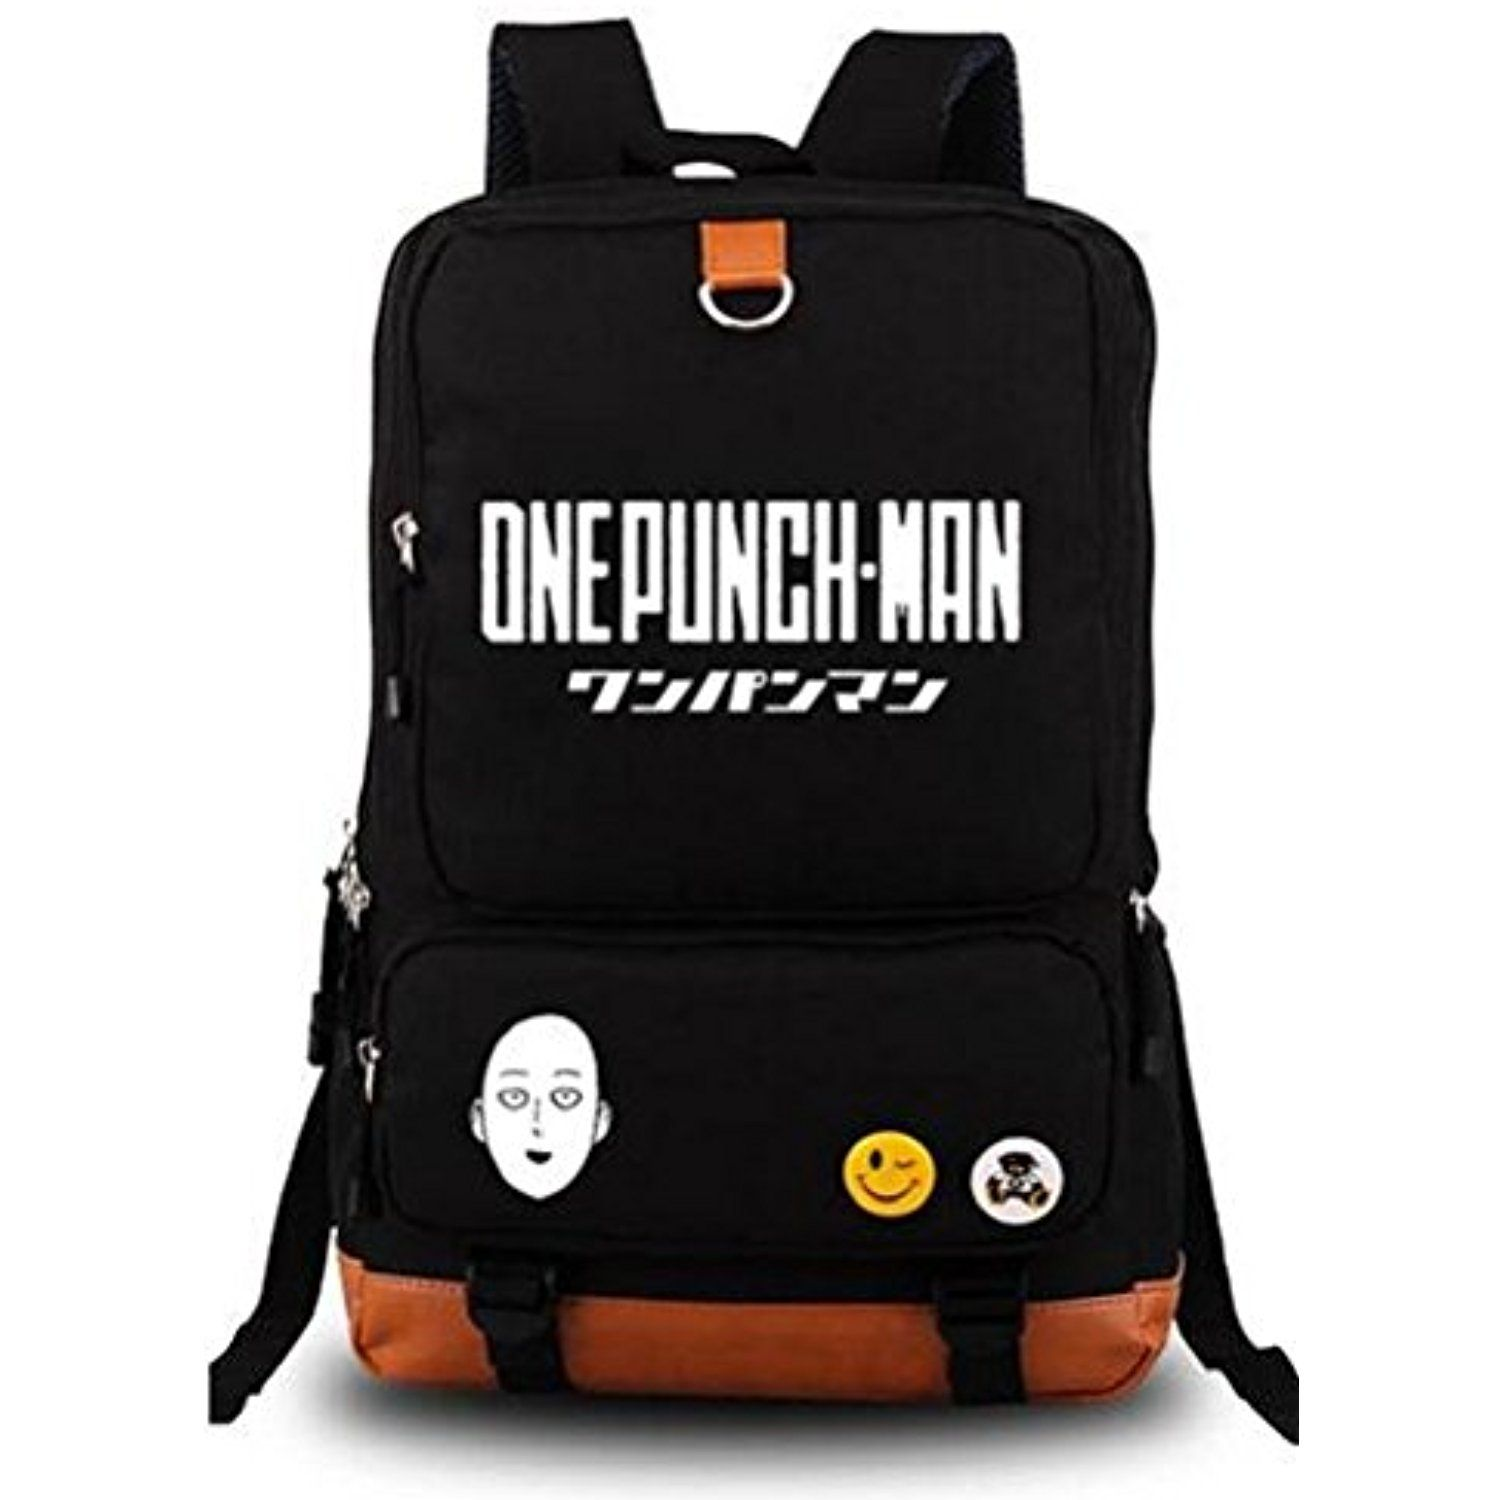 Yoyoshomeâ one punch man anime saitama cosplay luminous daypack rucksack backpack school bag